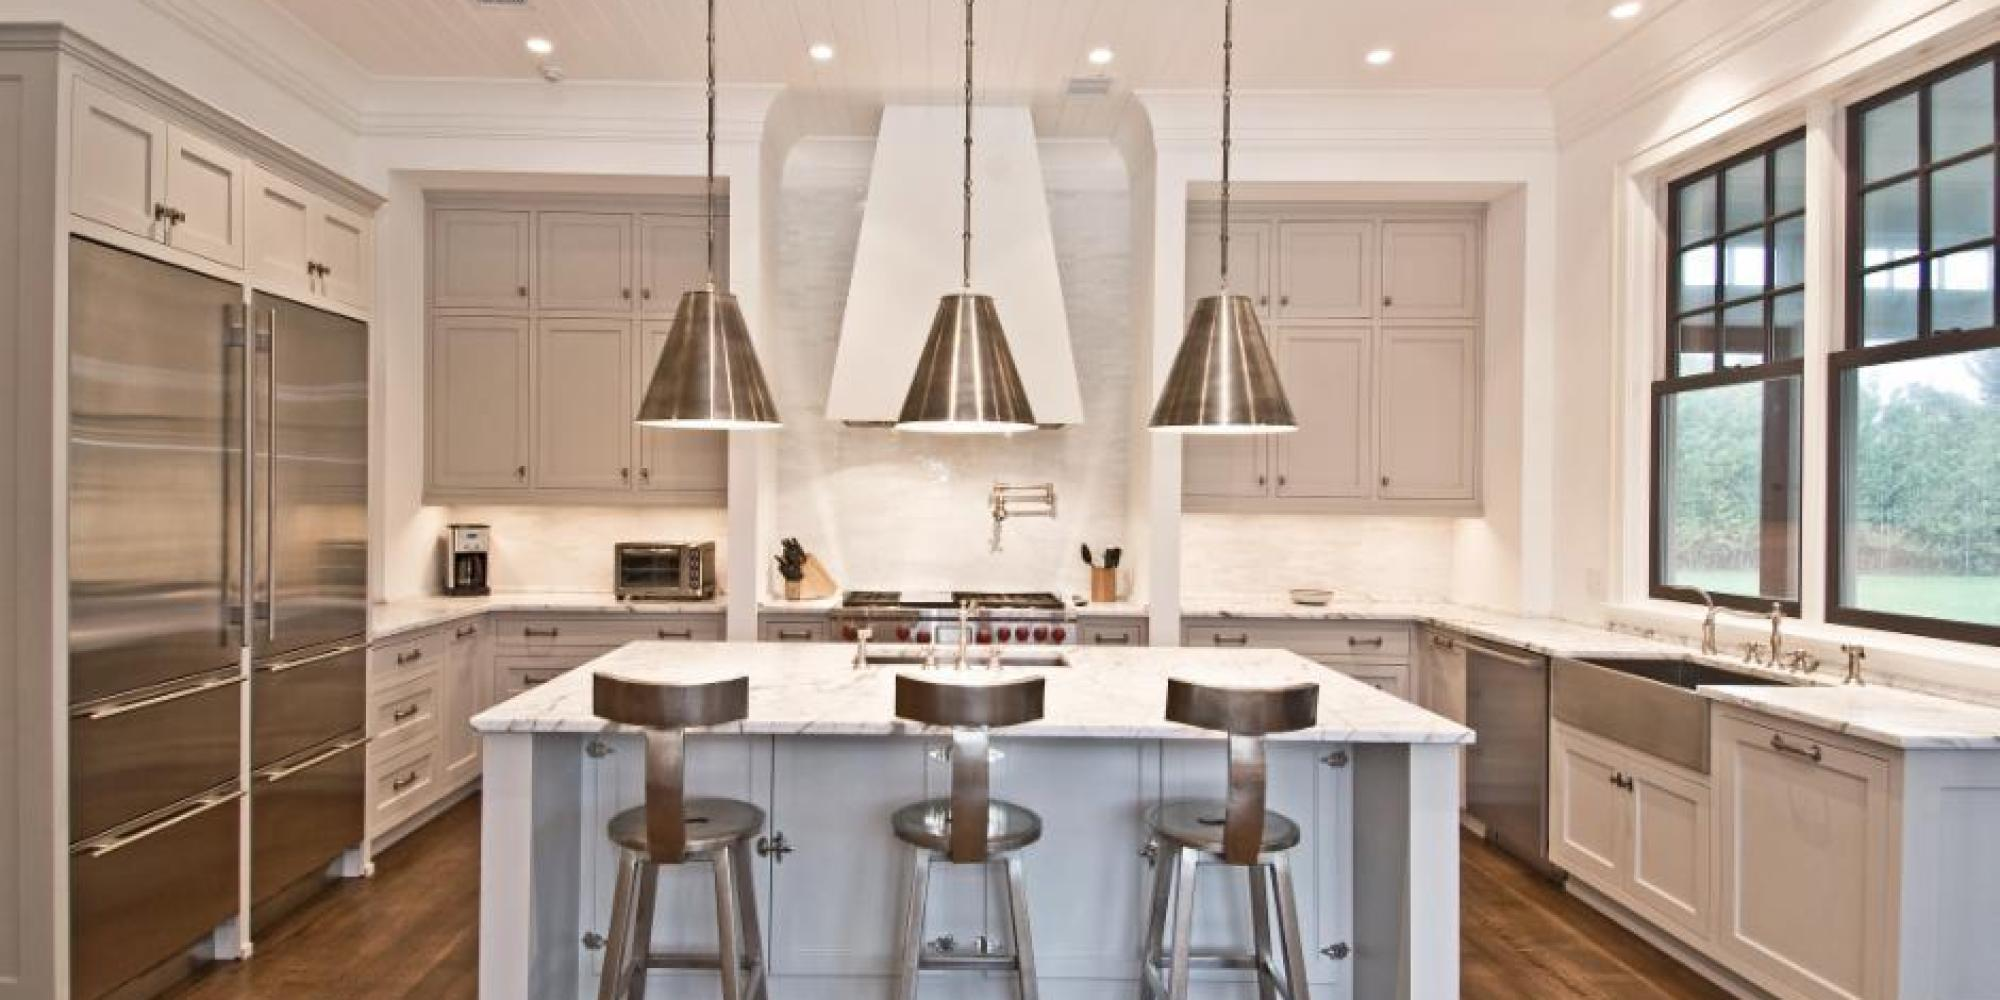 The Best Paint Colors For Every Type Of Kitchen HuffPost - What color should i paint my kitchen with white cabinets